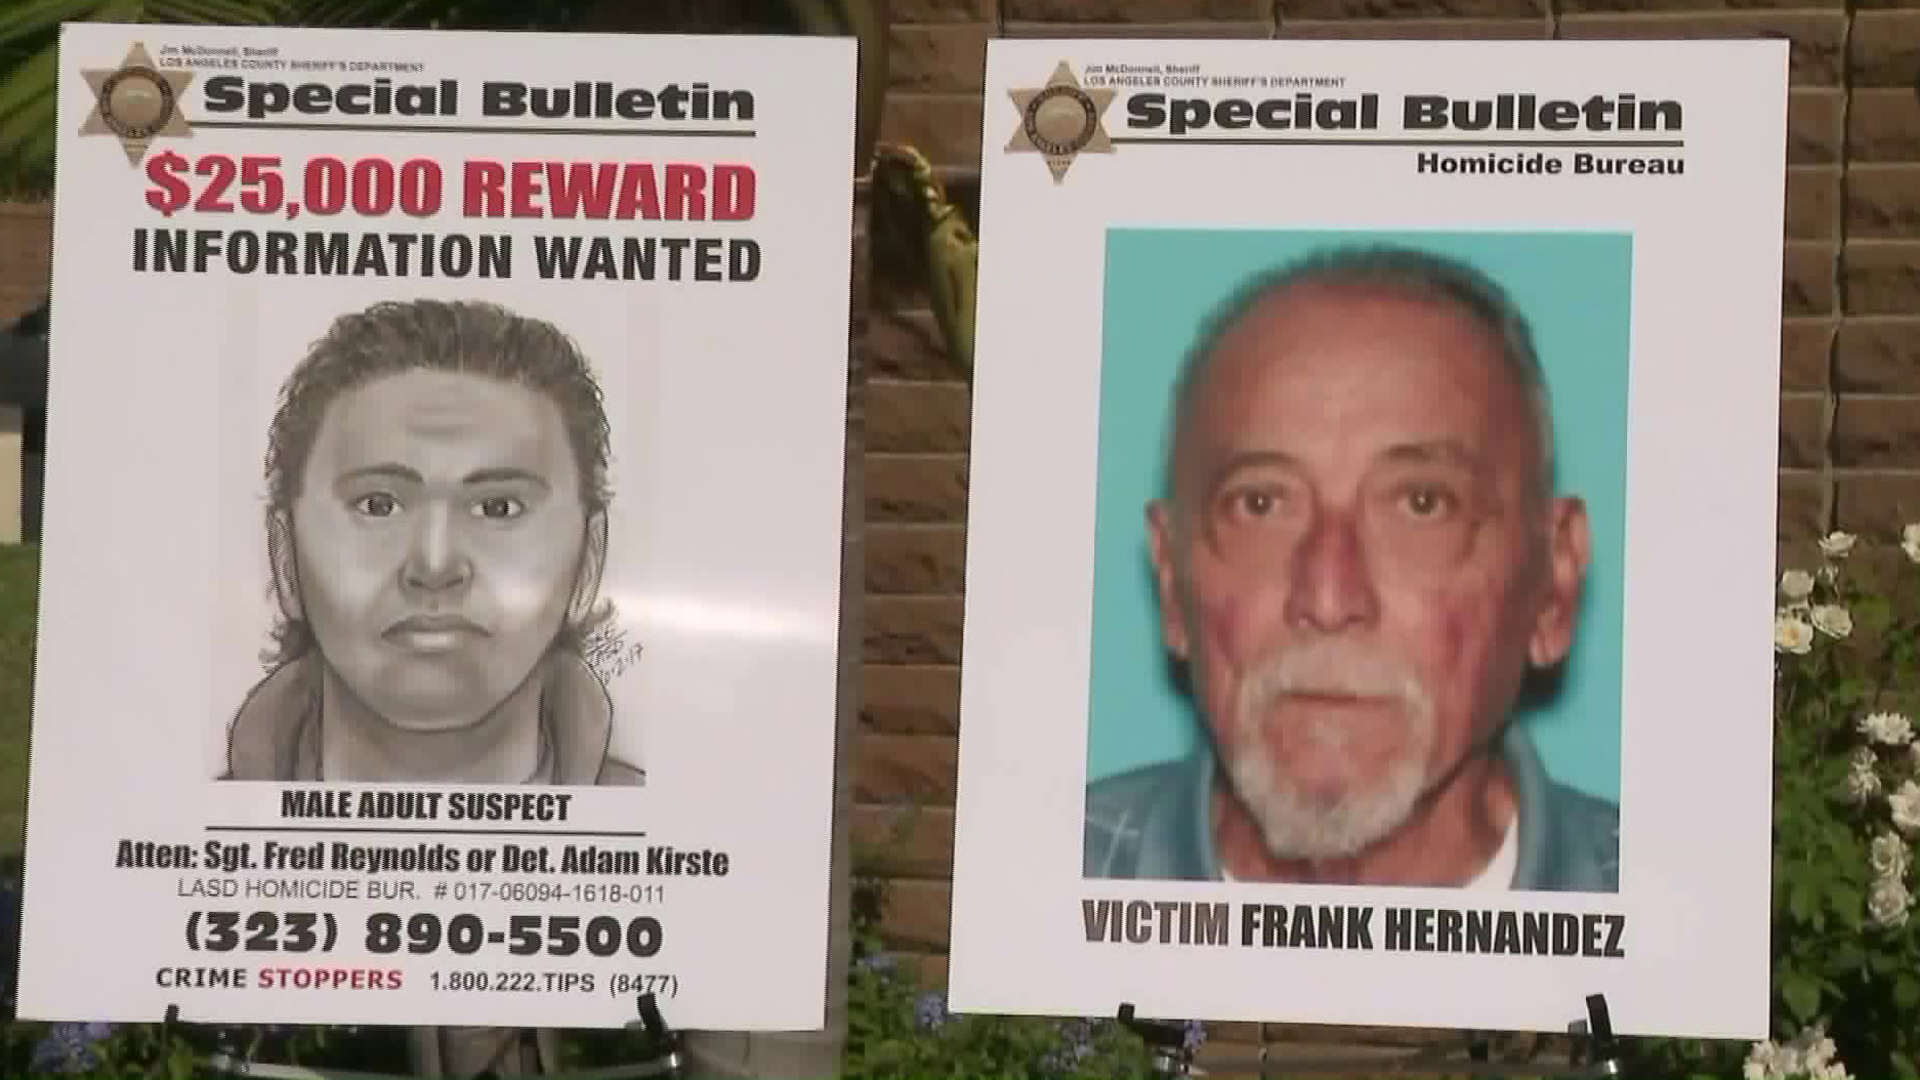 Authorities showed a sketch of the suspect and photo of the victim at a news conference announcing a $25,000 reward in the case on Sept. 13, 2017. (Credit: KTLA)